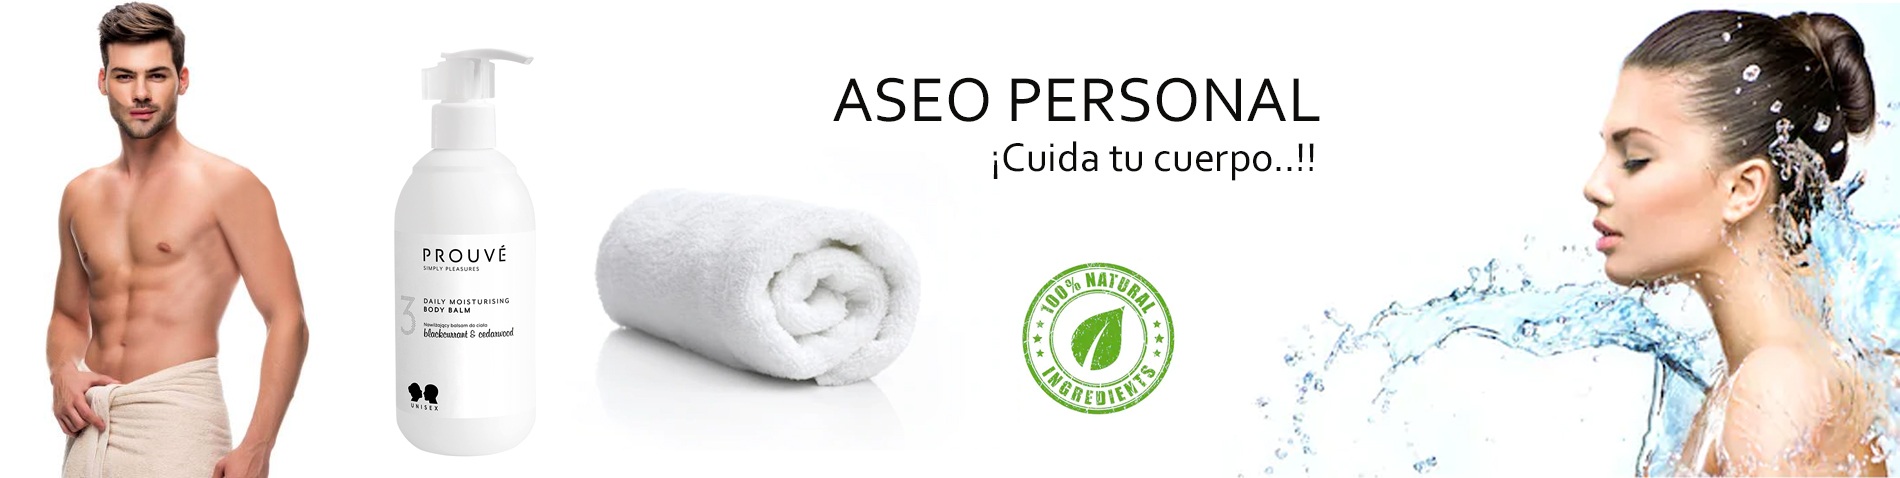 aseo personal tienda perfumes prouvé